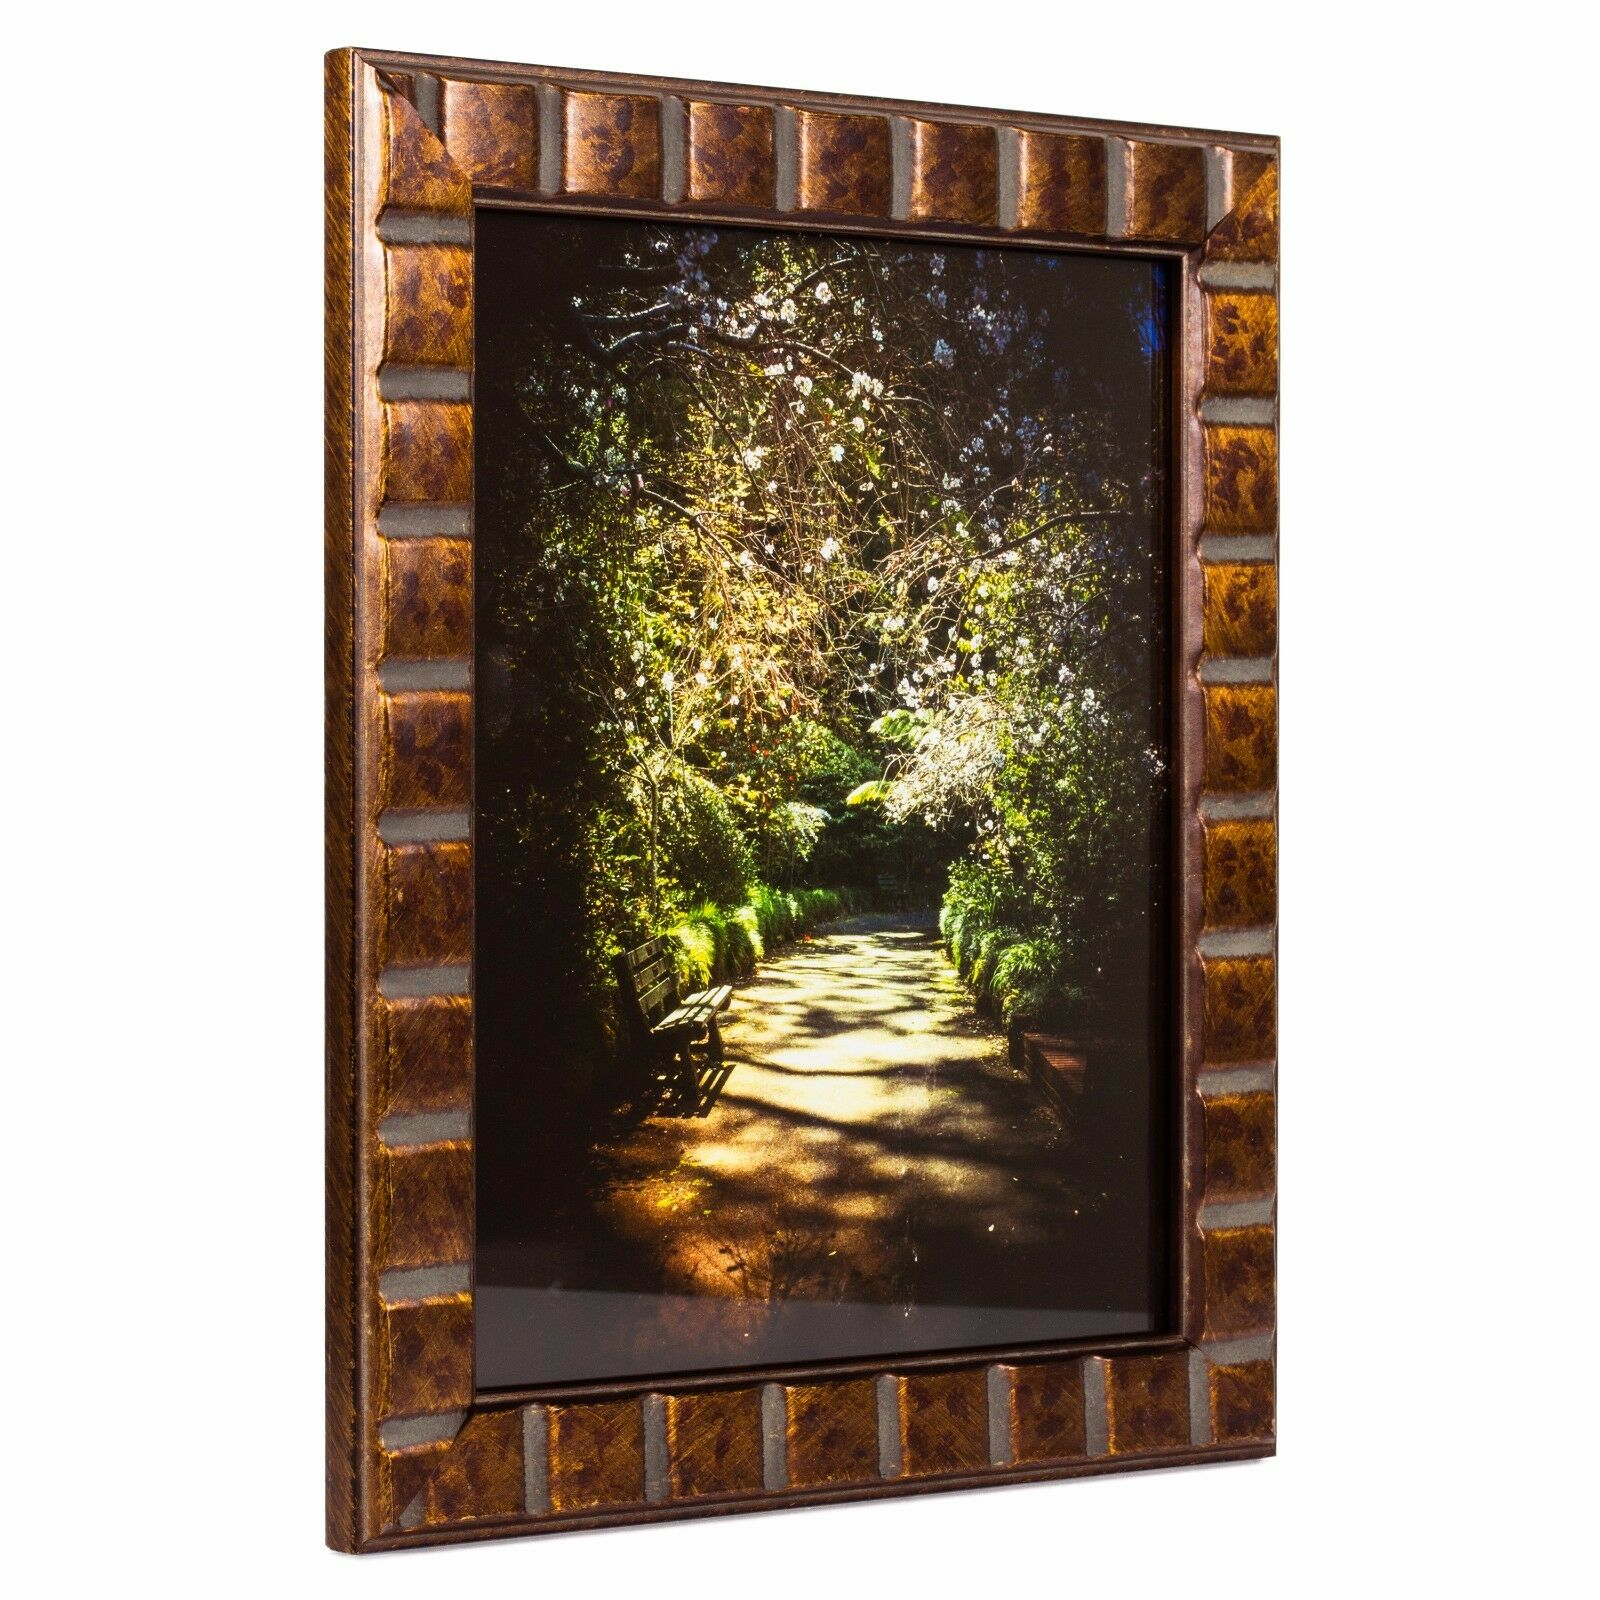 Craig frames mosaic 113 inch aged bronze solid wood picture frame 8 jeuxipadfo Image collections